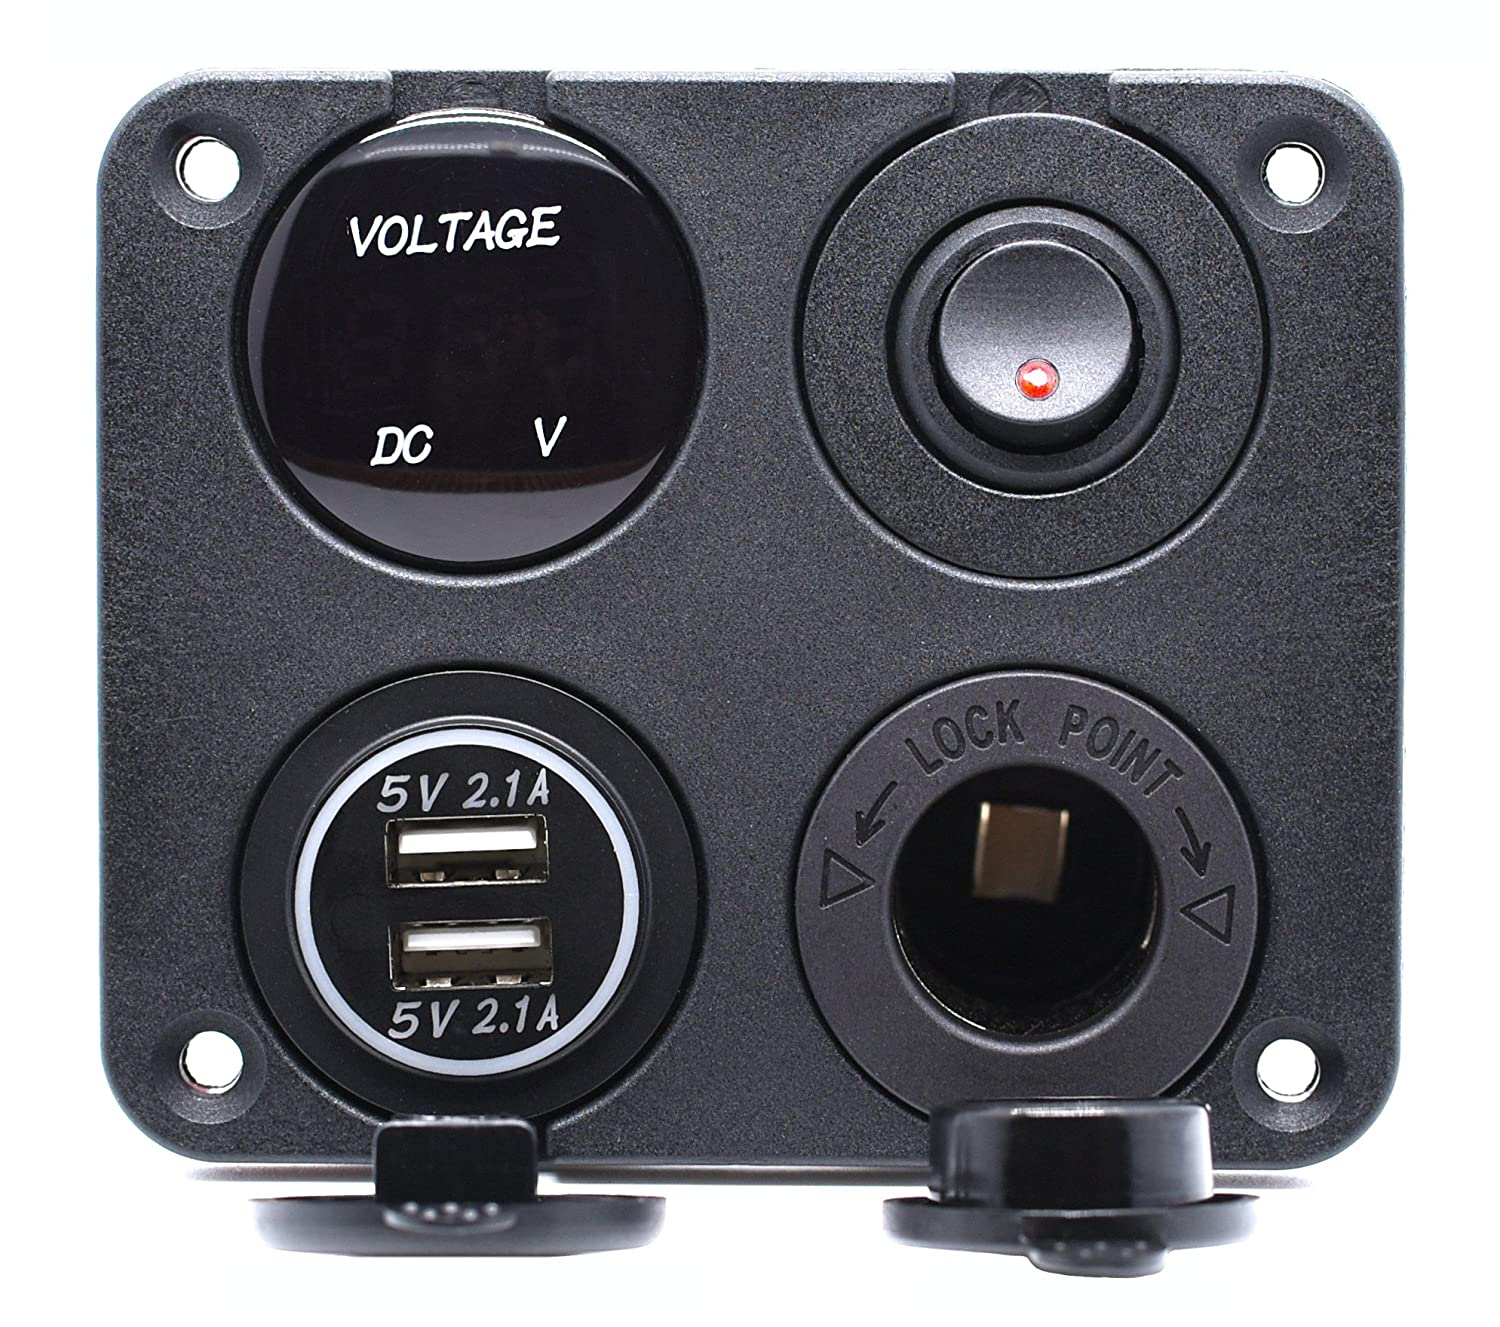 91SHxXKUZjL._SL1500_ cllena dual usb socket charger 2 1a&2 1a led voltmeter 12v  at creativeand.co